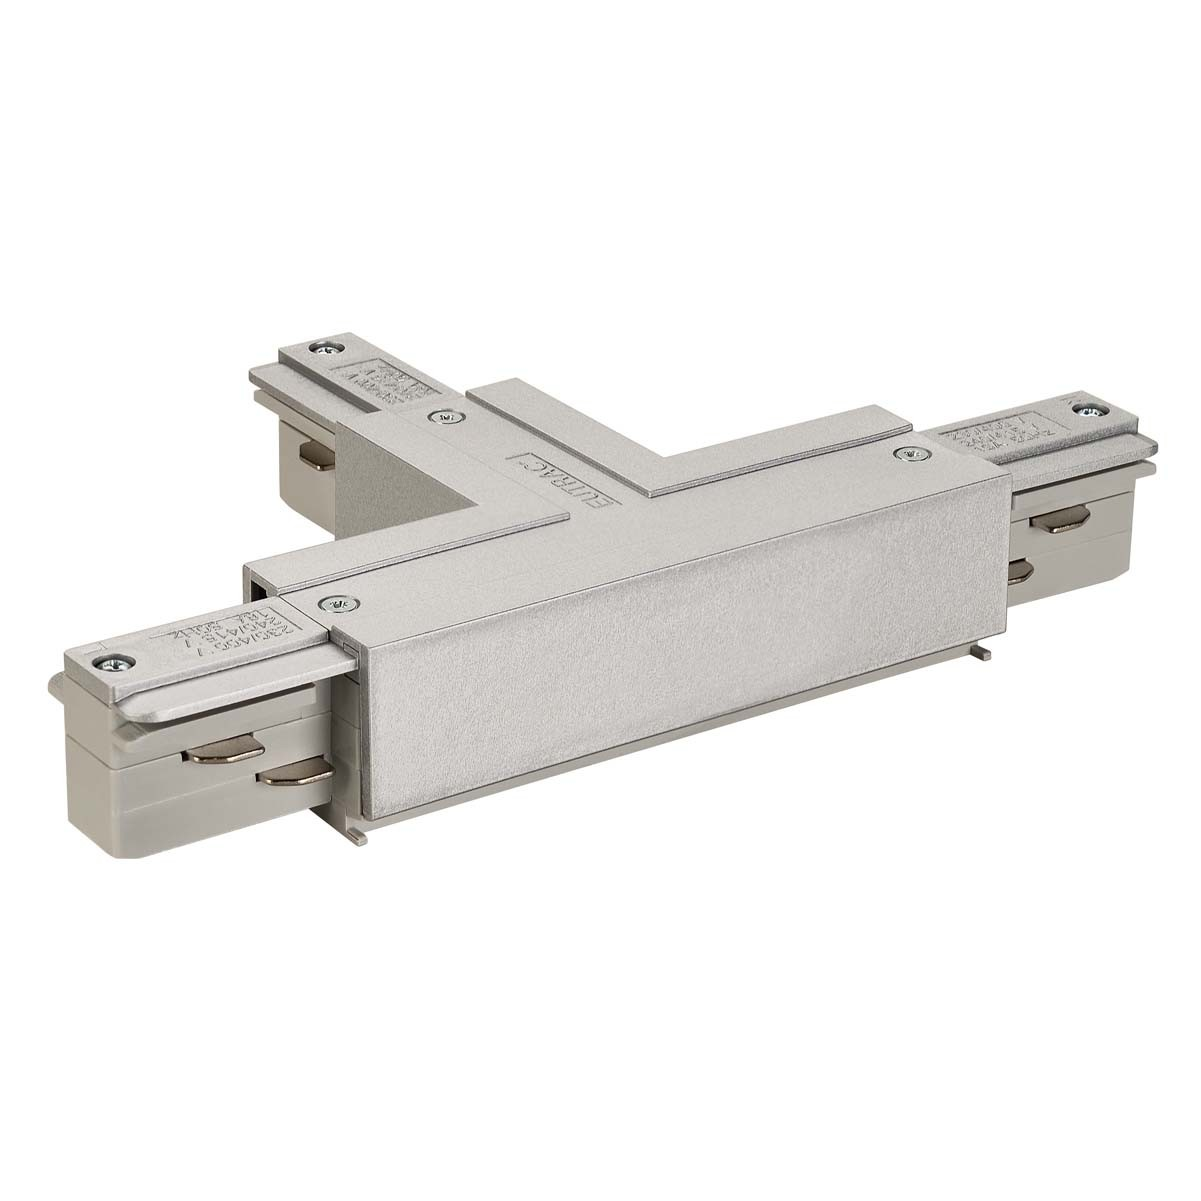 SLV 145634 T Coupler Earth Left Silver Grey Eutrac 3 Circuit 240V Surface Track Accessory